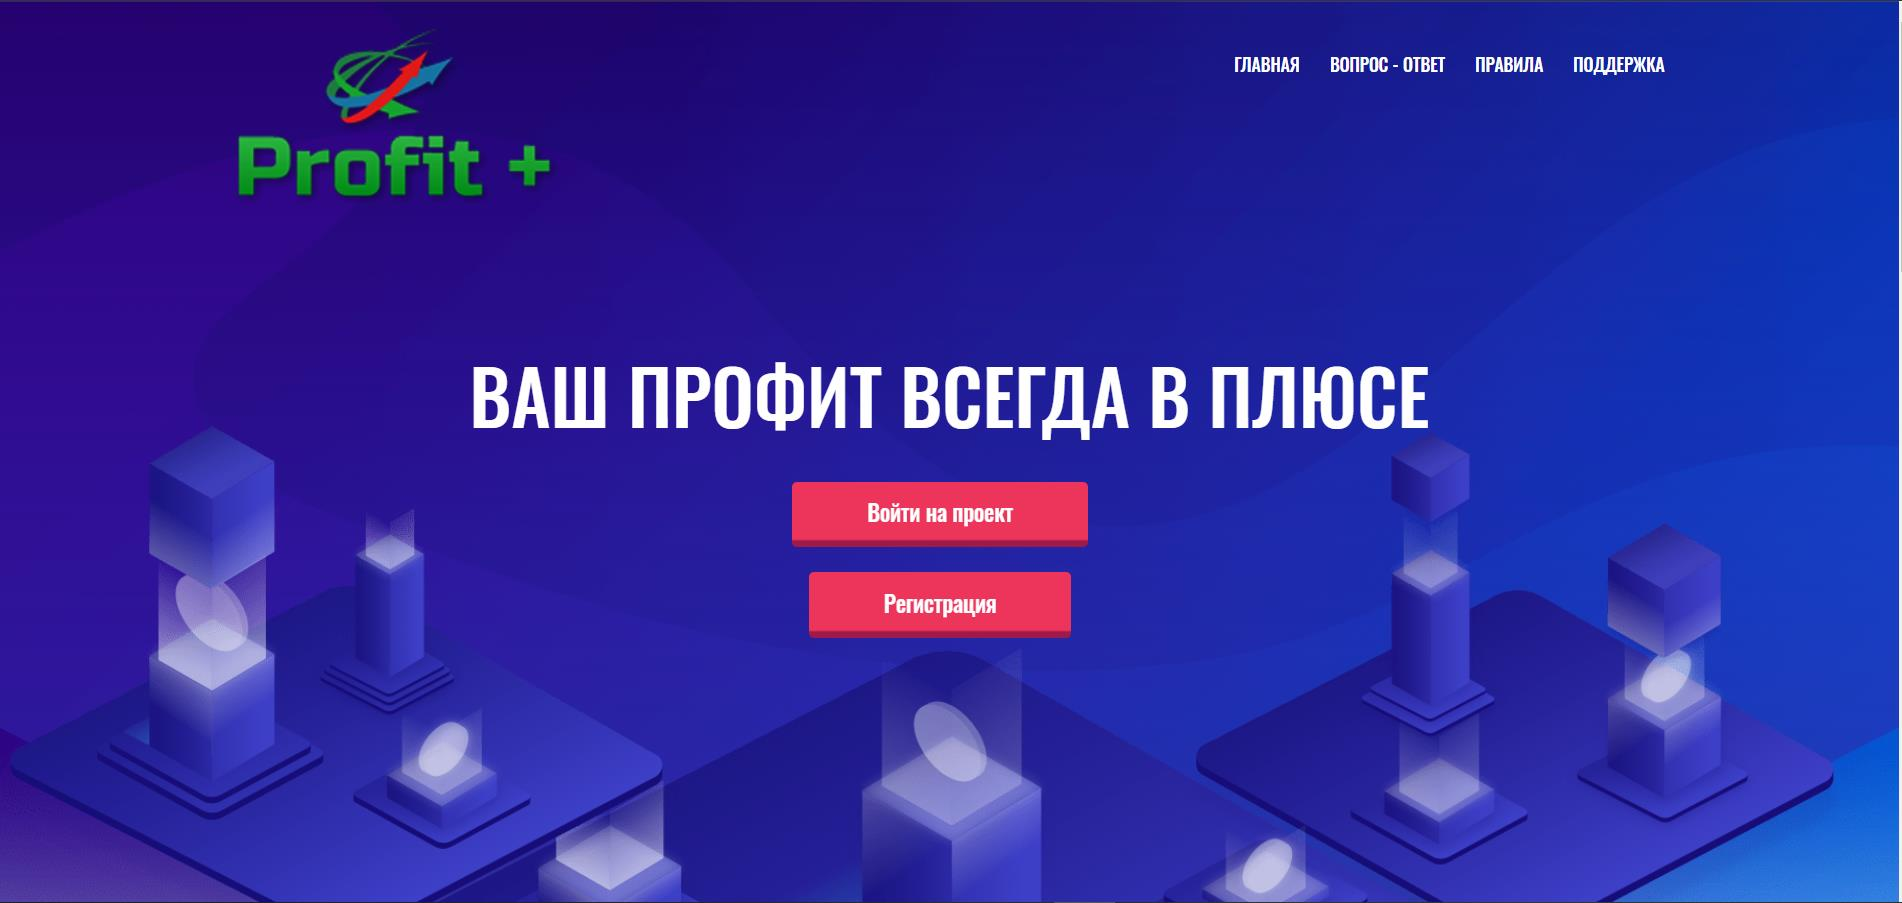 HYIP-CHECK.RU - Мониторинг HYIP Проектов. РЕФБЕК 50% - Страница 4 ScreenShot_20191020094459